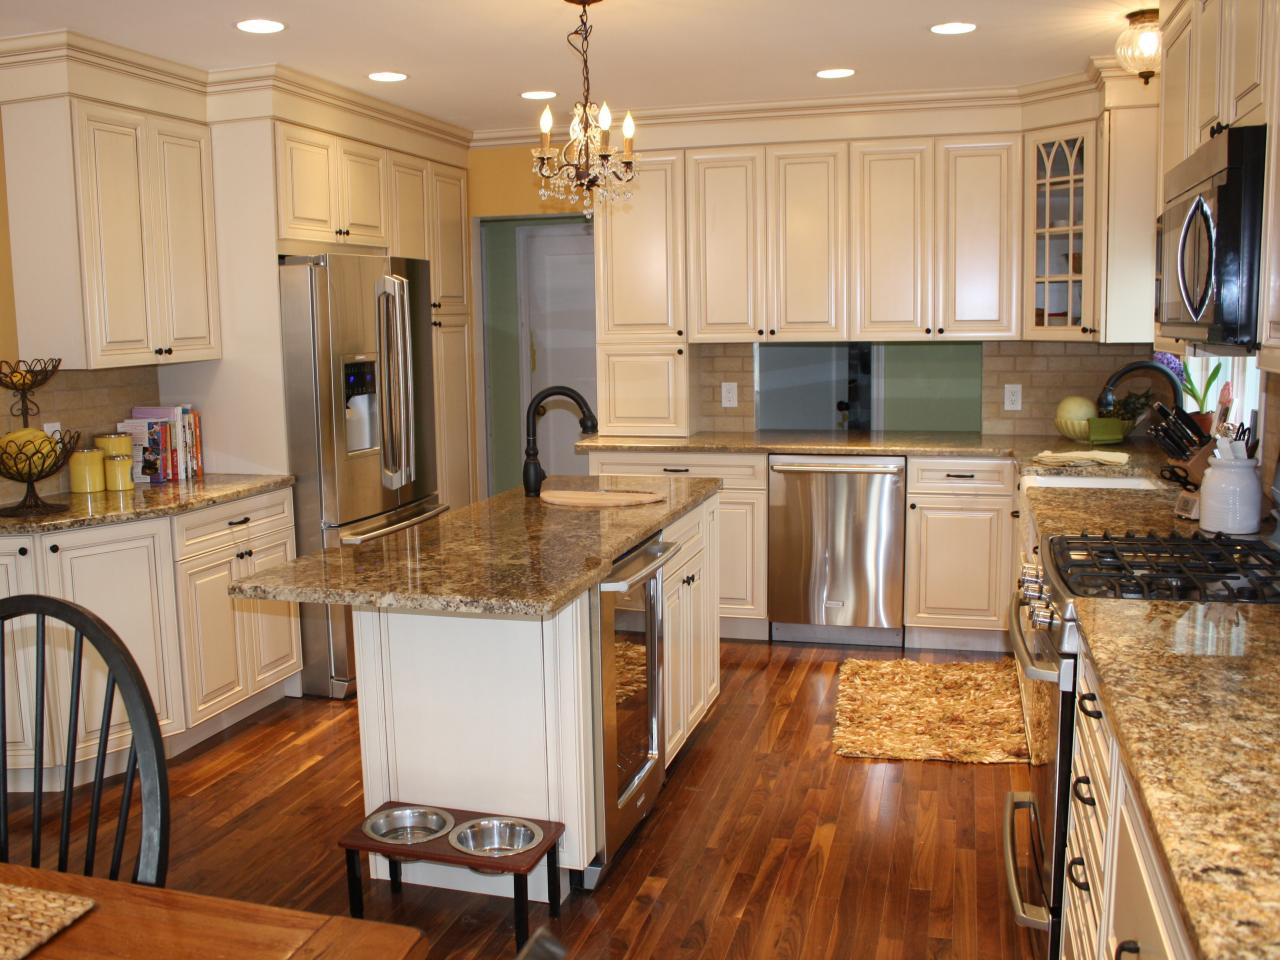 DIY Money Saving Kitchen Remodeling Tips